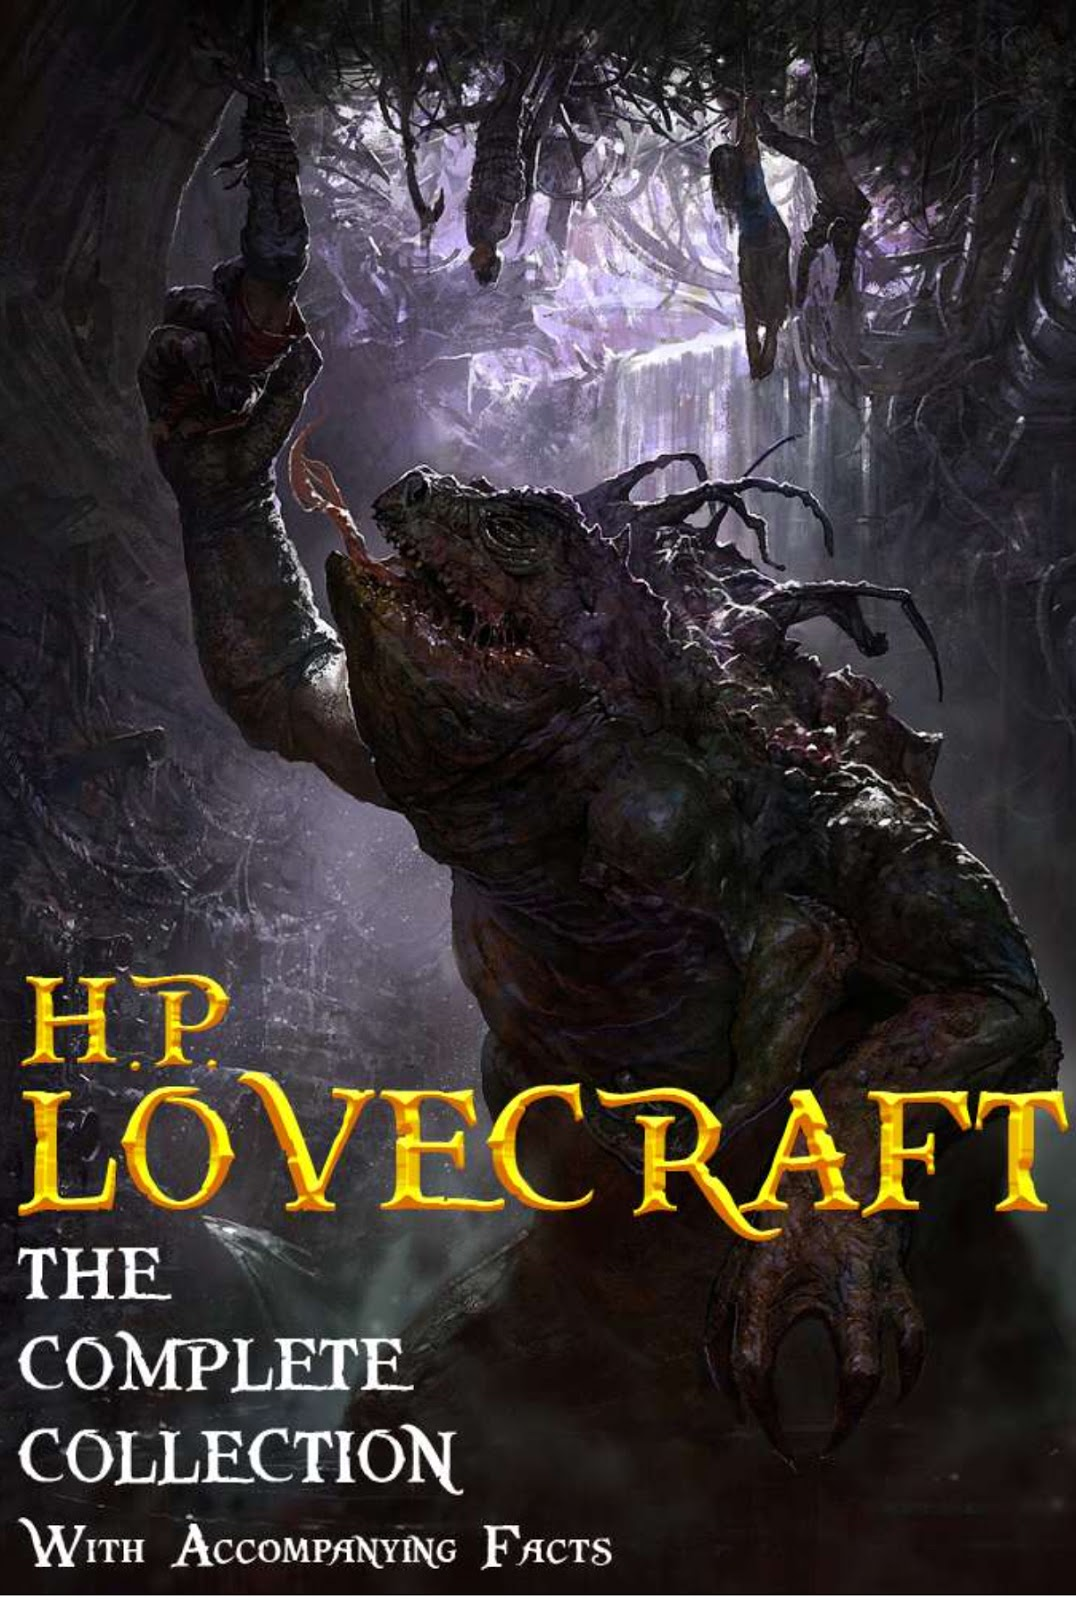 short story the alchemist by h p lovecraft antoine lives in a decrepit castle and is the last of a long line of noblemen the castle is utter disrepair and has lived there alone for sixty years since